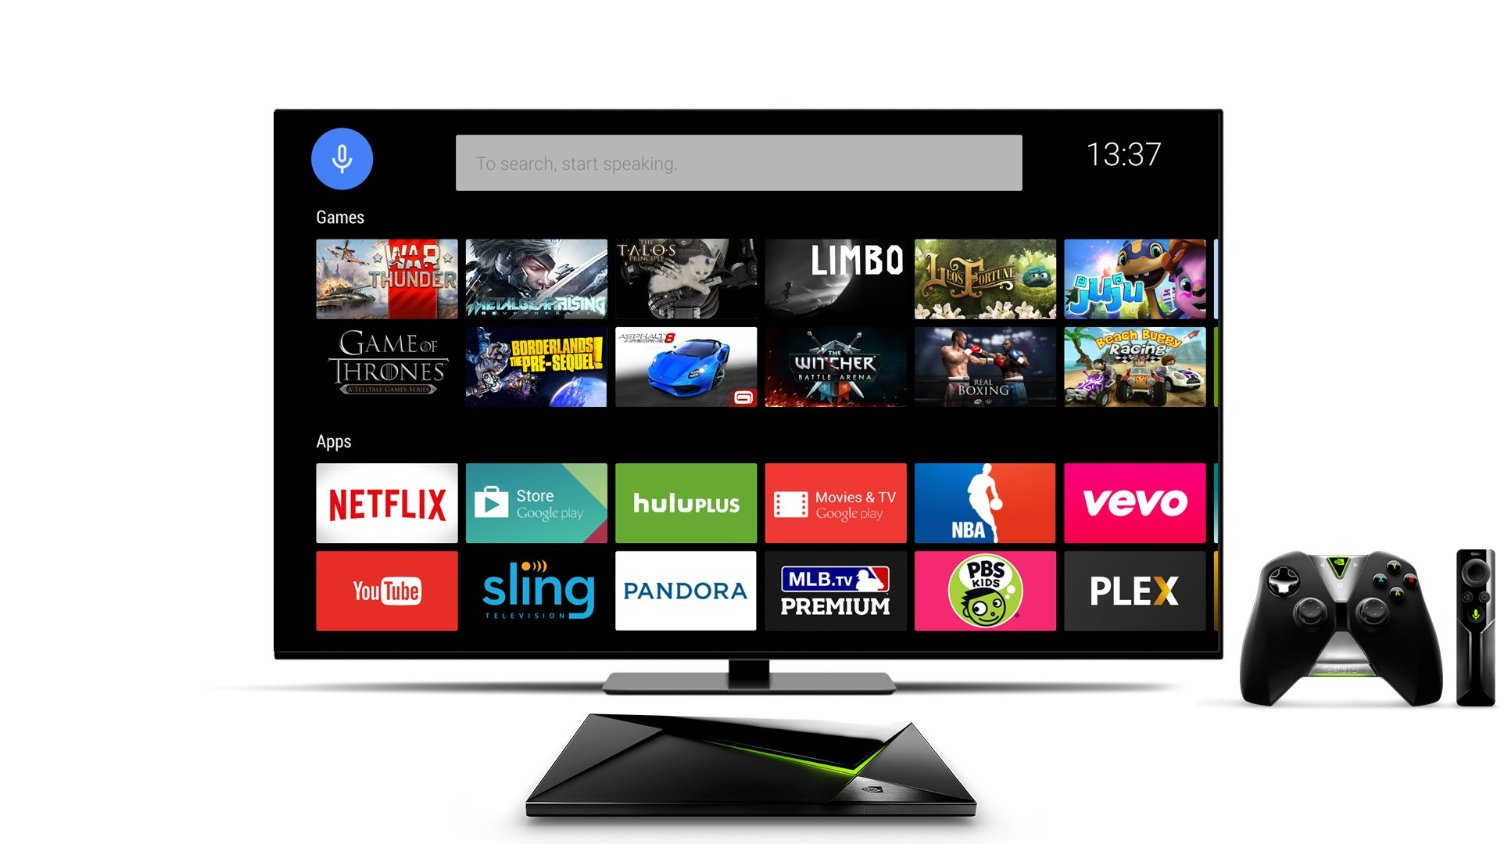 Nvidia Shield Pro Android TV Box 2